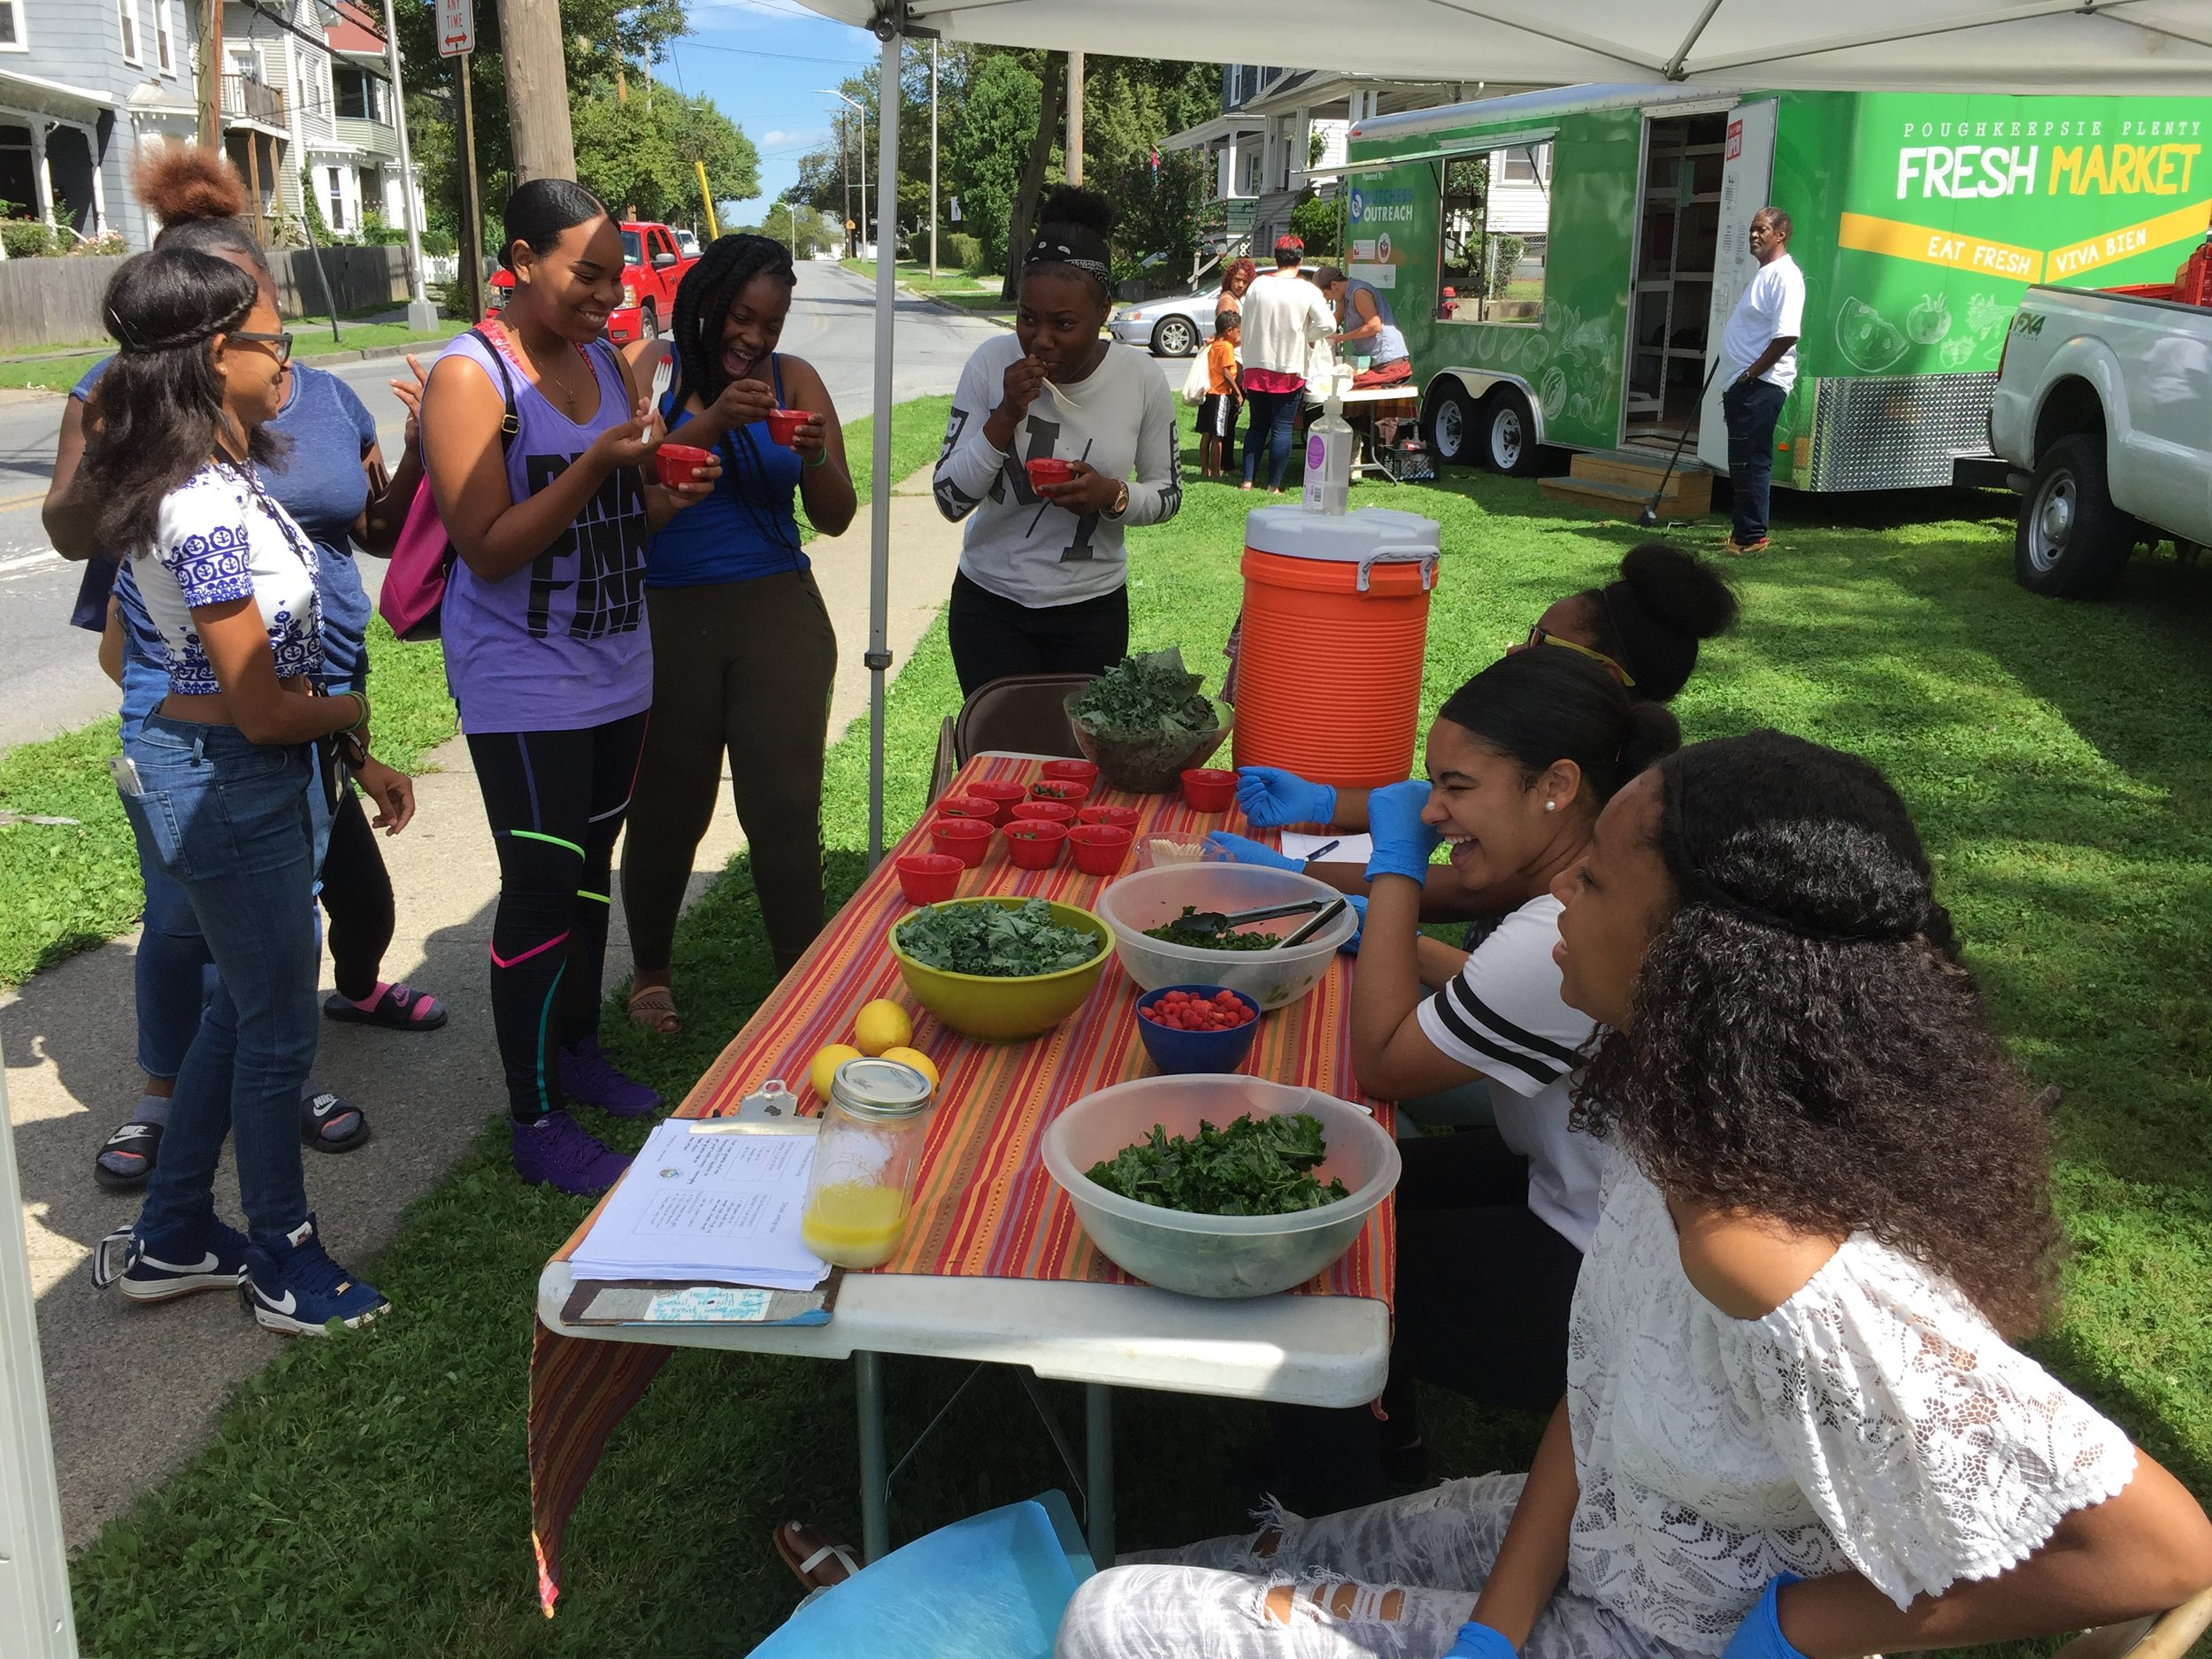 Teen interns get their peers excited about kale salad at Dutchess Outreach's Mobile Fresh Market.